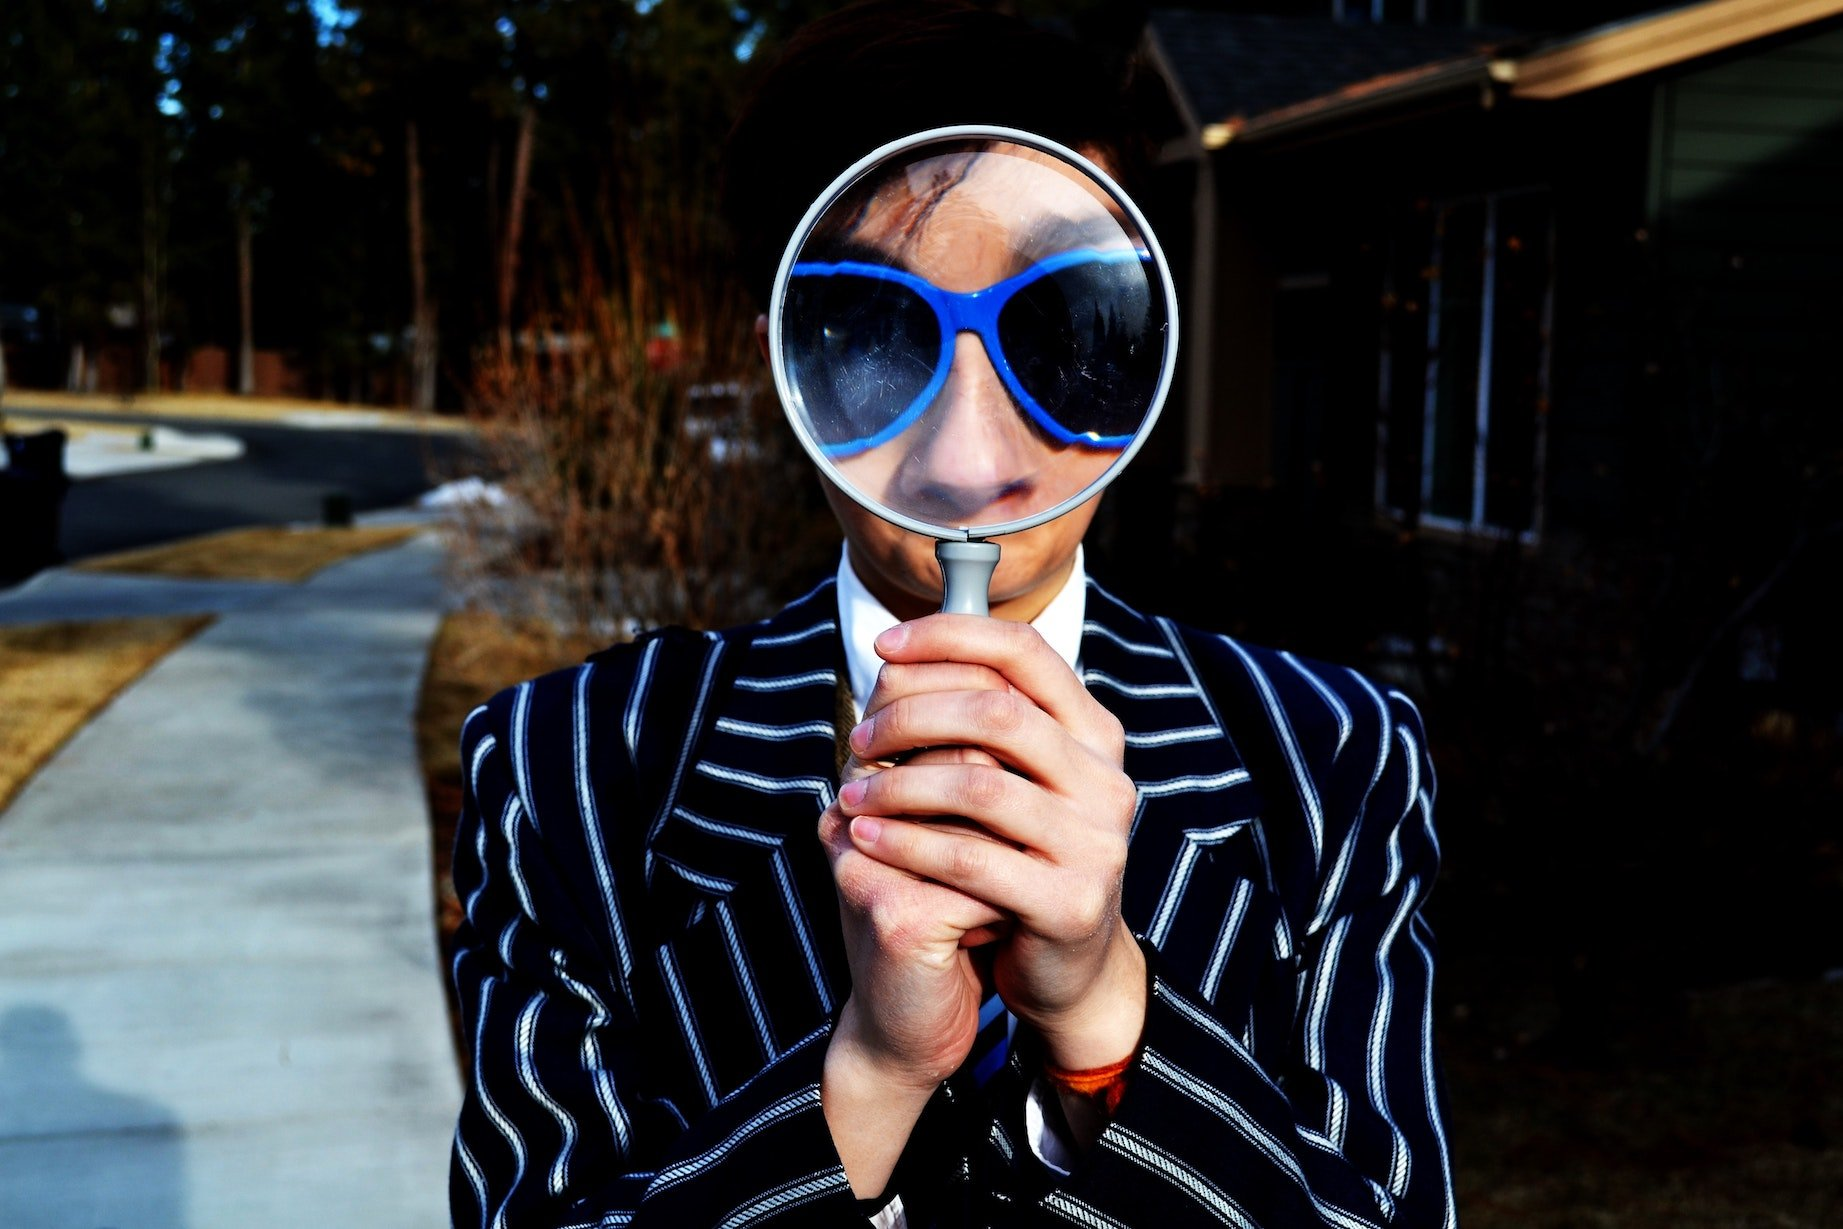 This is a picture a well dressed man looking through a magnifying glass for an article called Competitive Analysis to Find Out Who Your Competitors Are by Octopus Competitive Intelligence Competitor Analysis focused on creating certainty